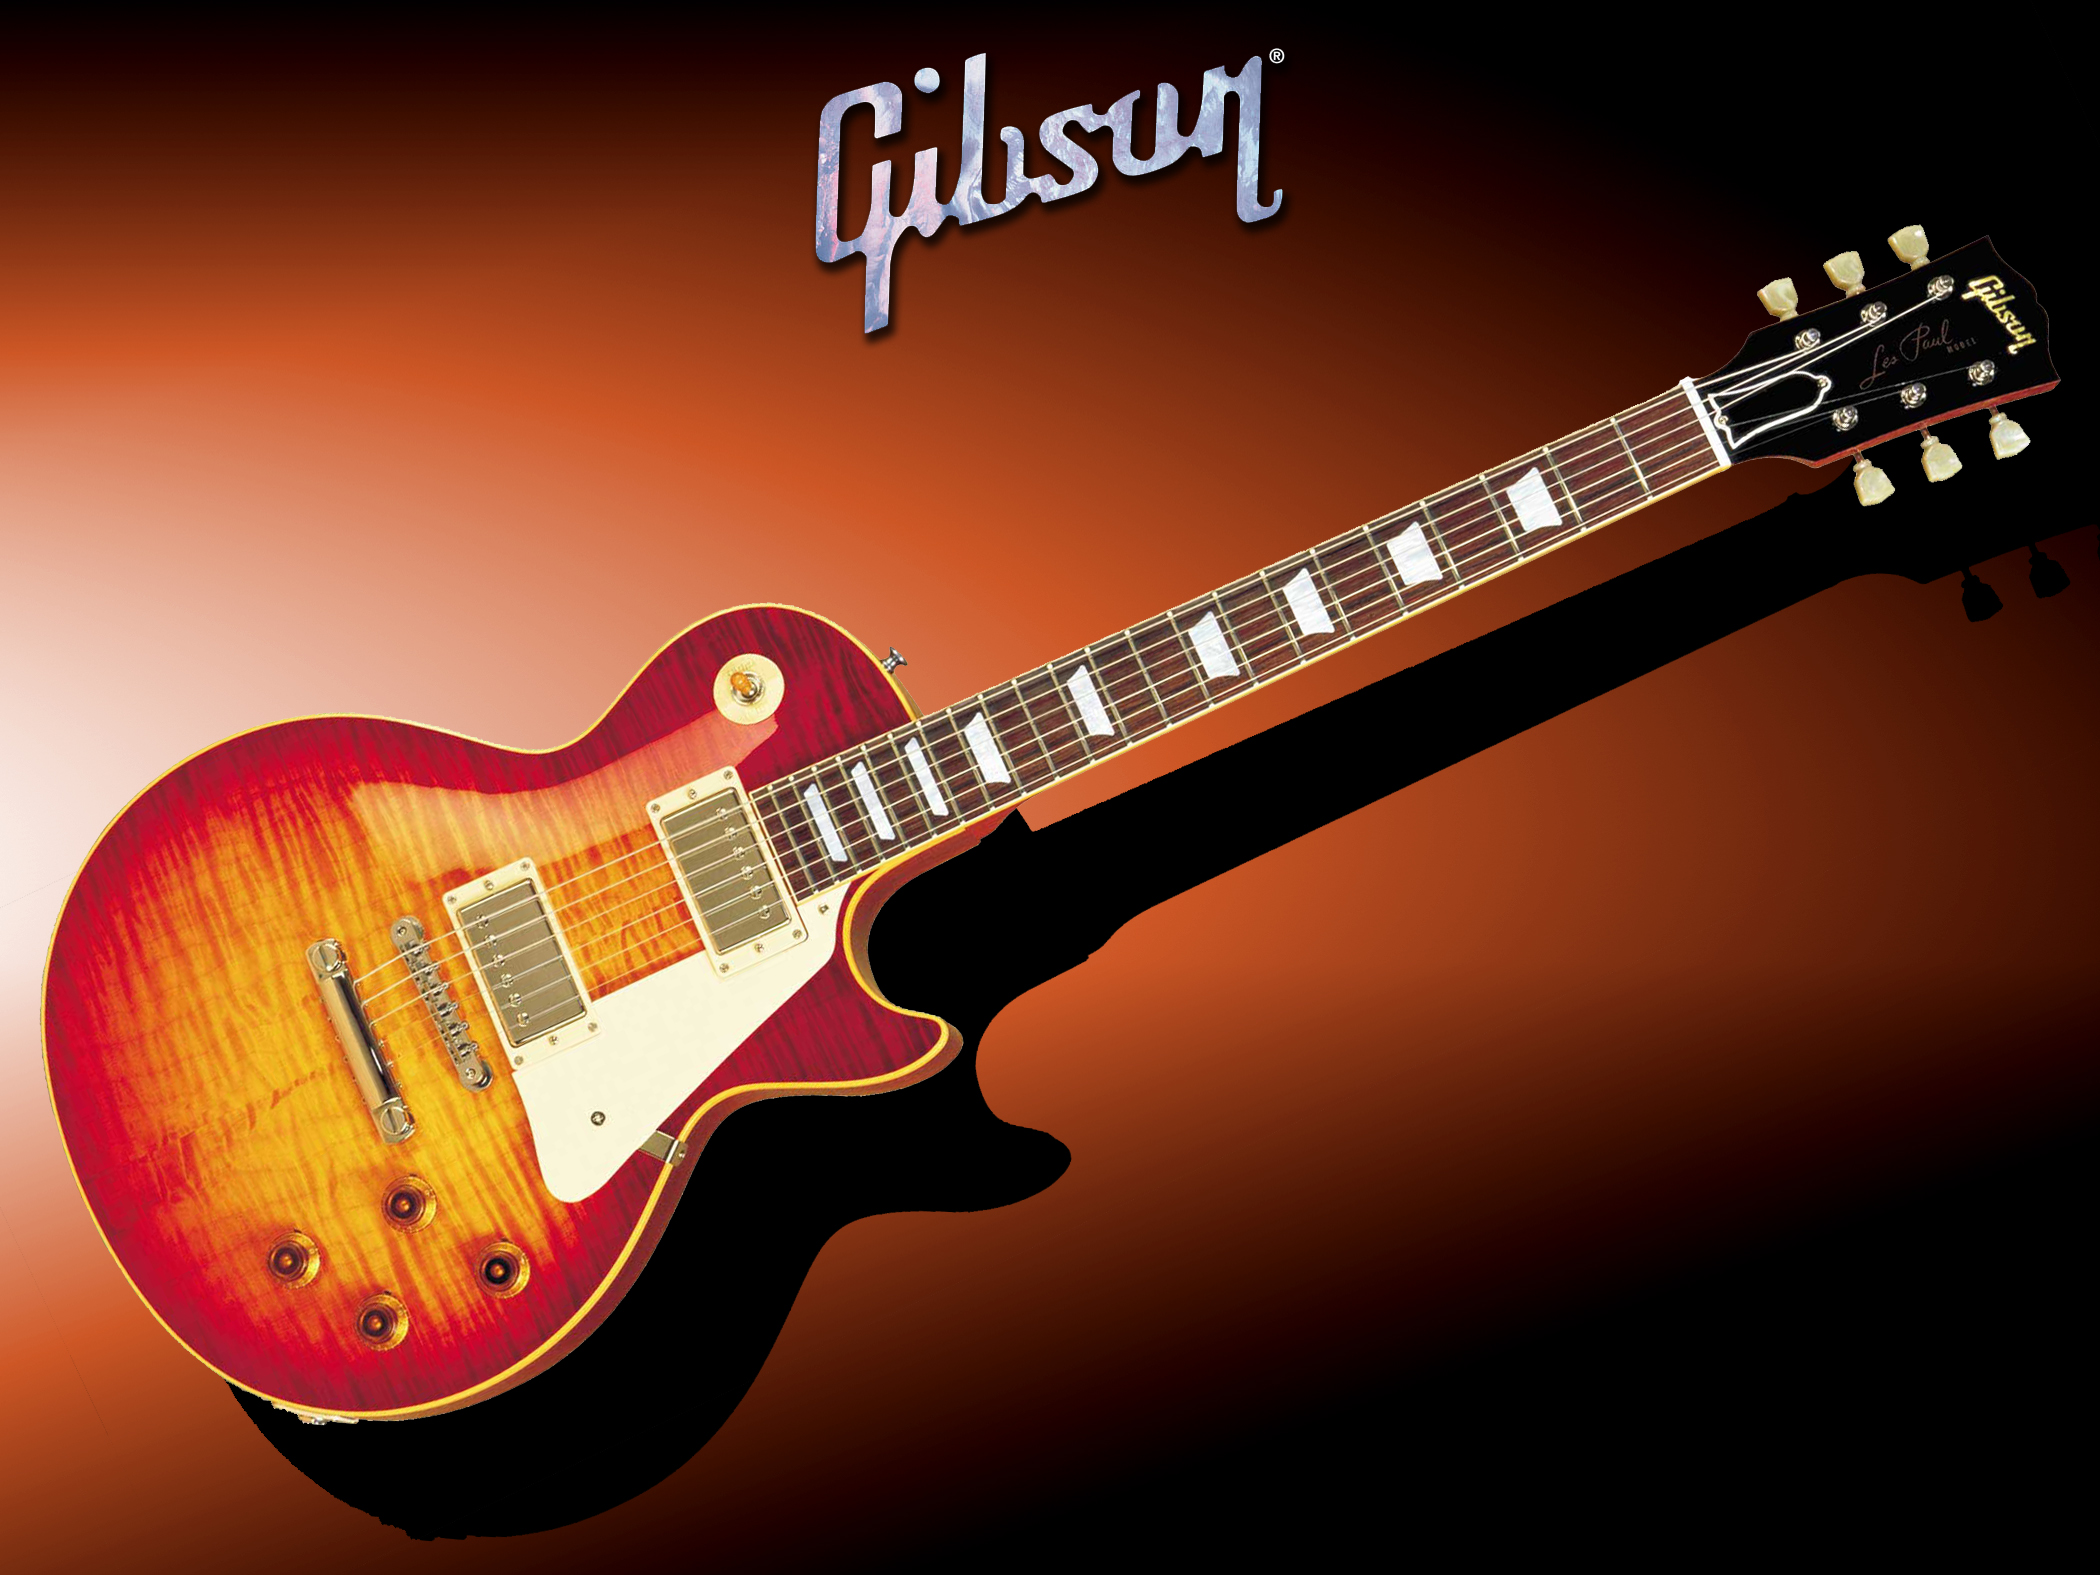 Gibson Les Paul by Sackrilige - Viral Credibility Marketing